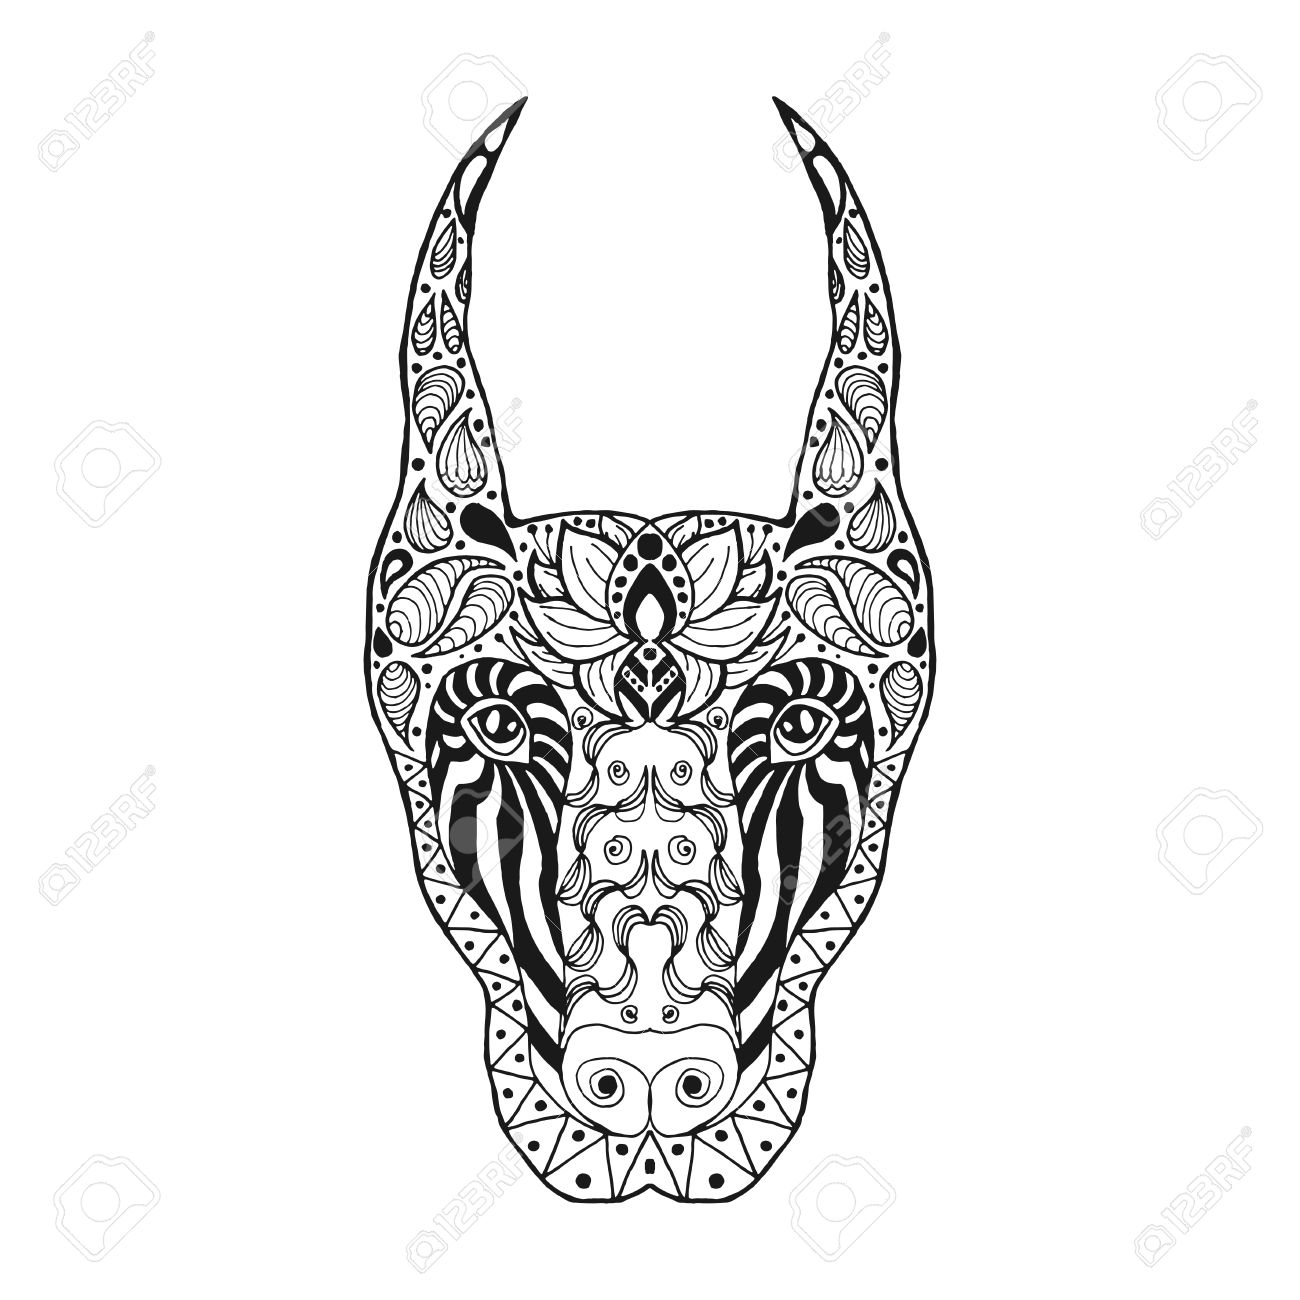 T shirt coloring pages - Sketch For Tattoo Or T Shirt Doberman Coloring Page Animals Hand